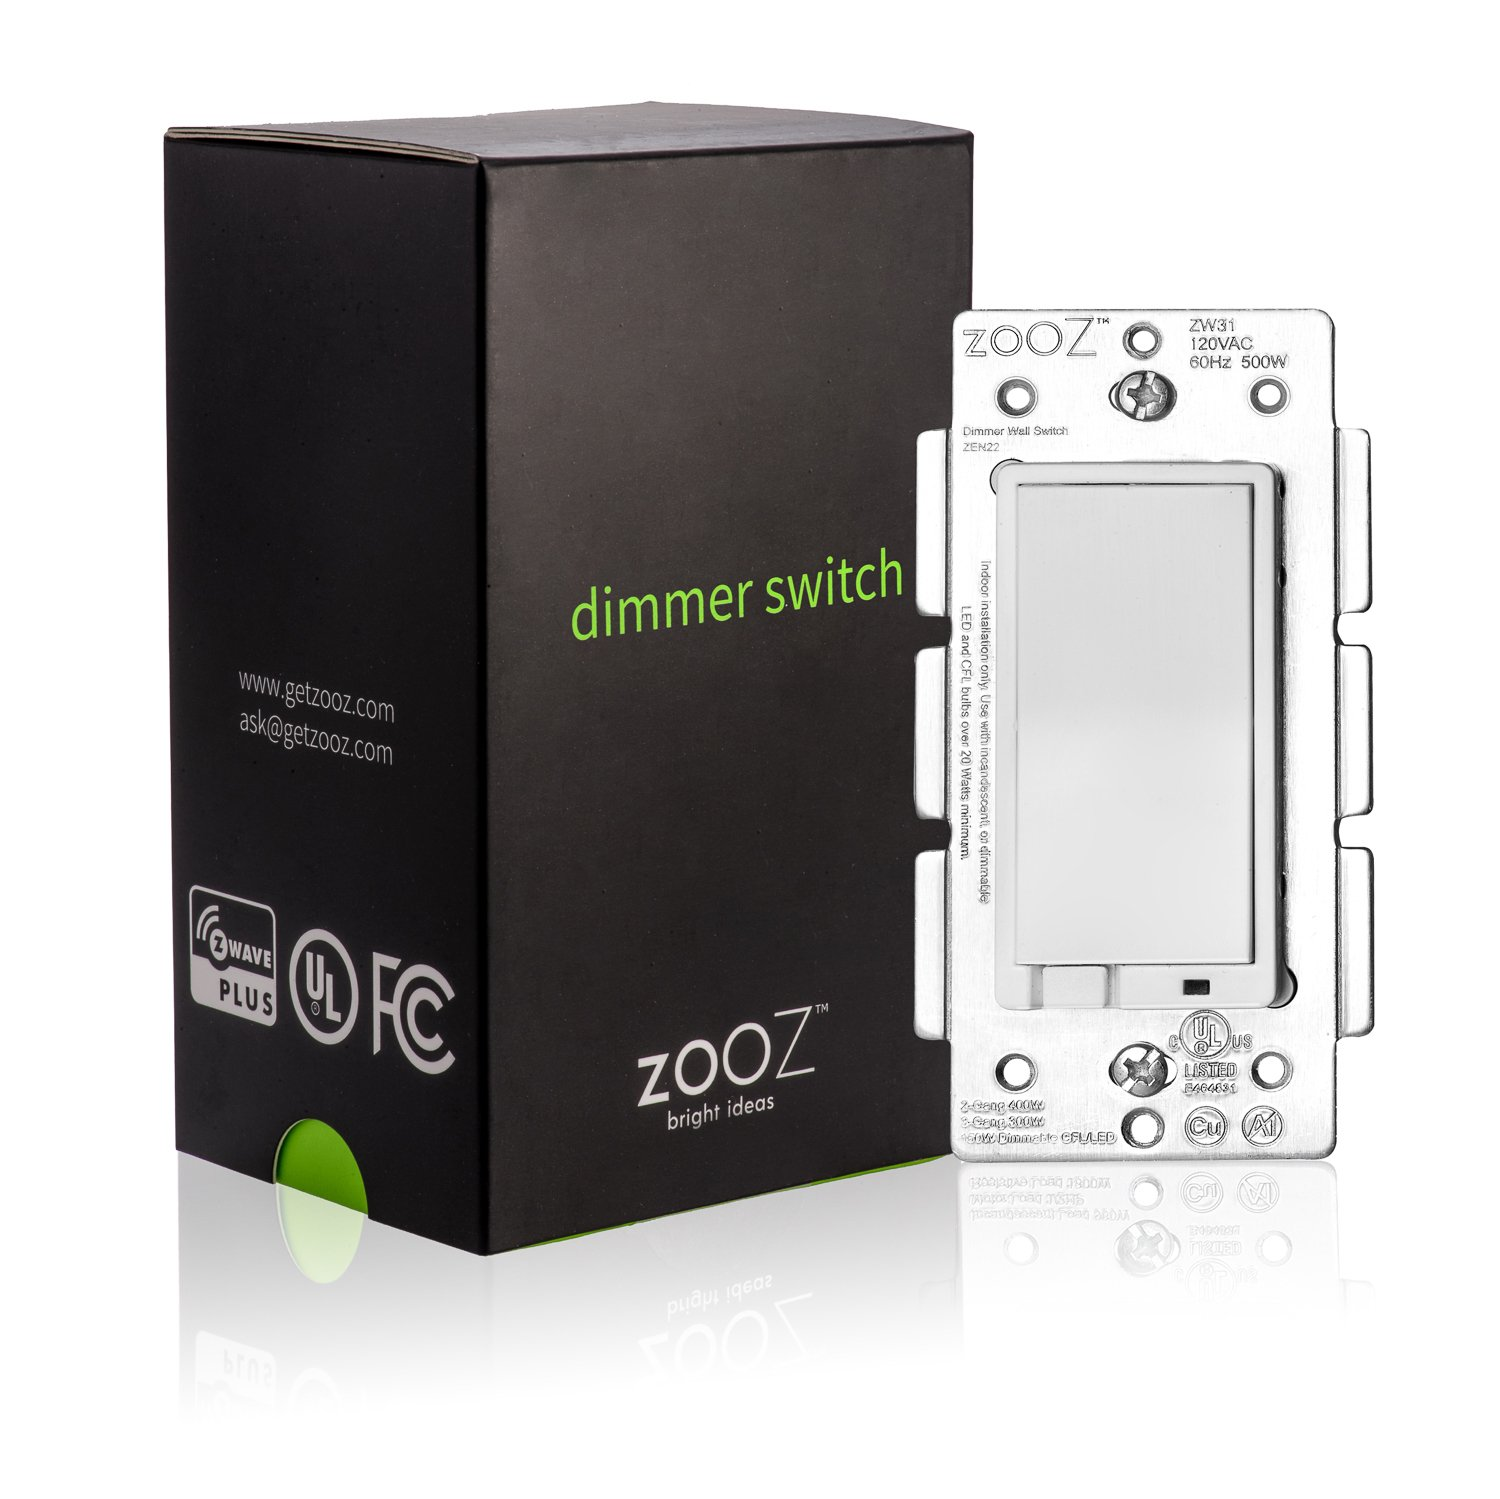 Zooz Z Wave Plus Wall Dimmer Switch Zen22 White Ver 20 Works Fitting To Old Electrical Wiringelectricalcircuitjpg With Existing Regular 3 Way